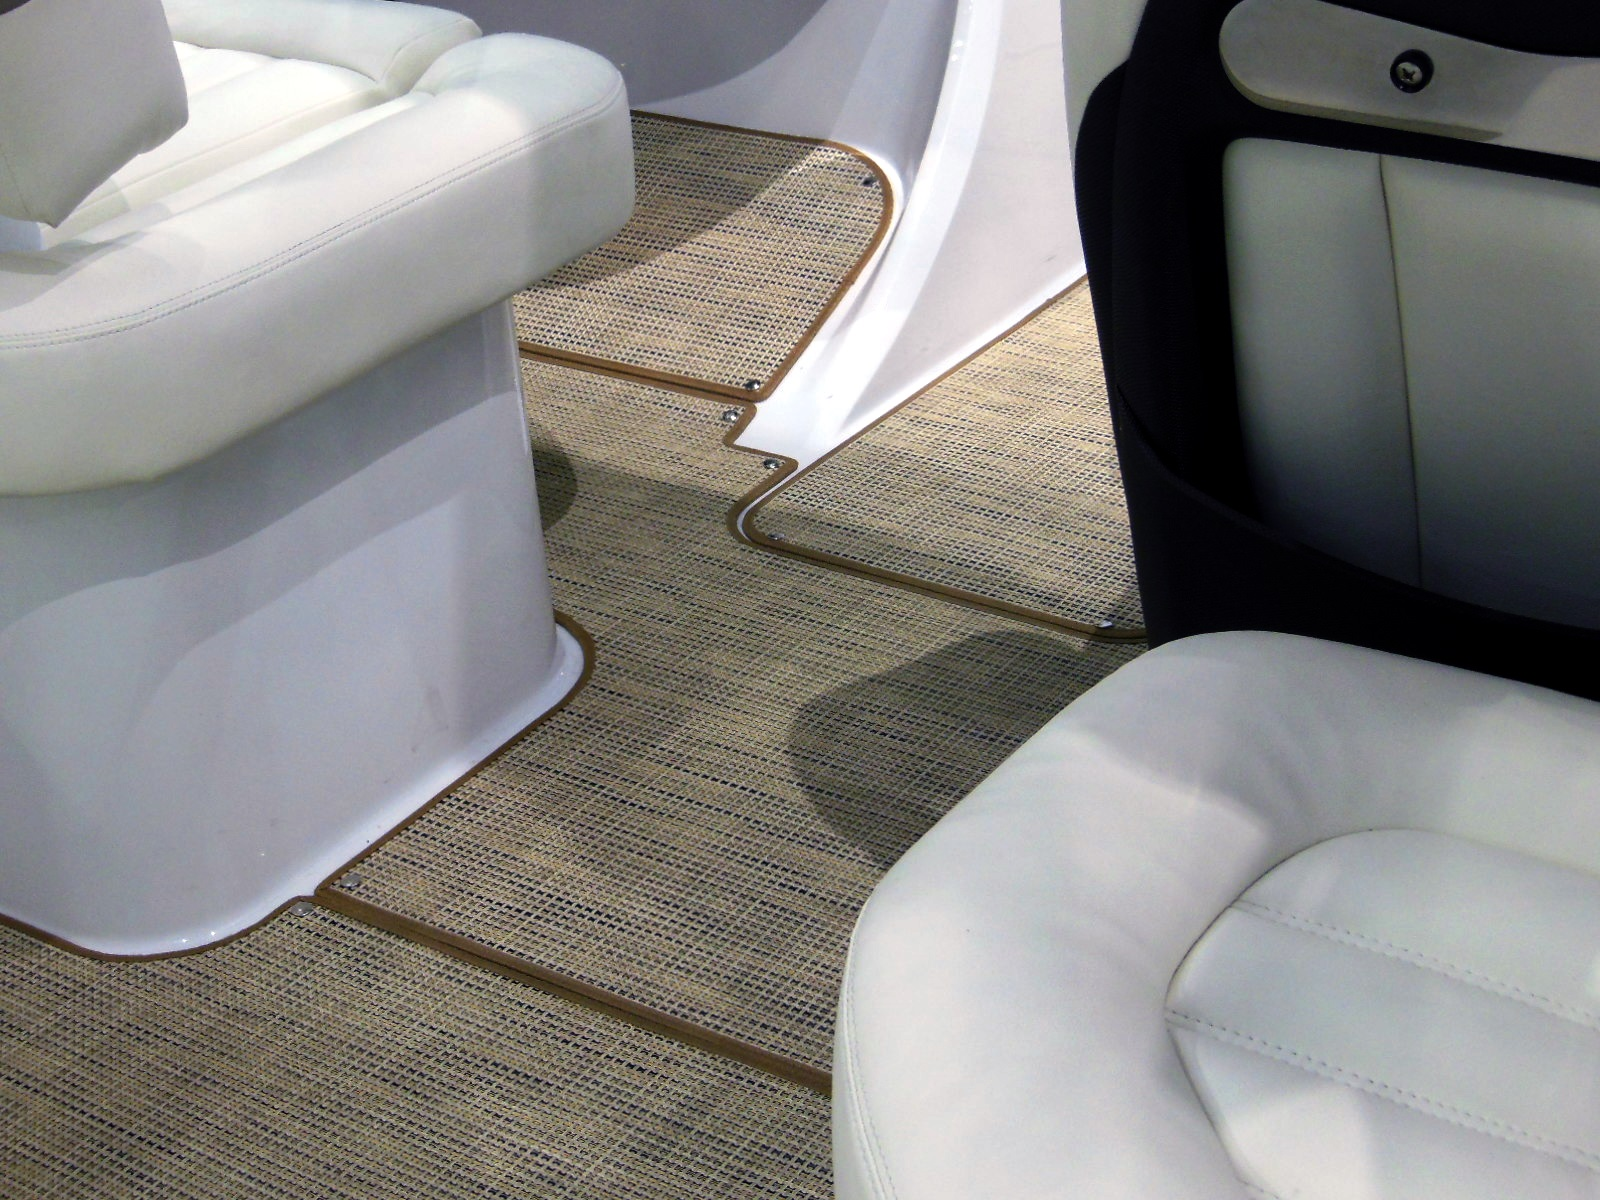 floor soft pinterest and pvc woodplasticdeck images boat synthetic decks mats best patio on teak decking